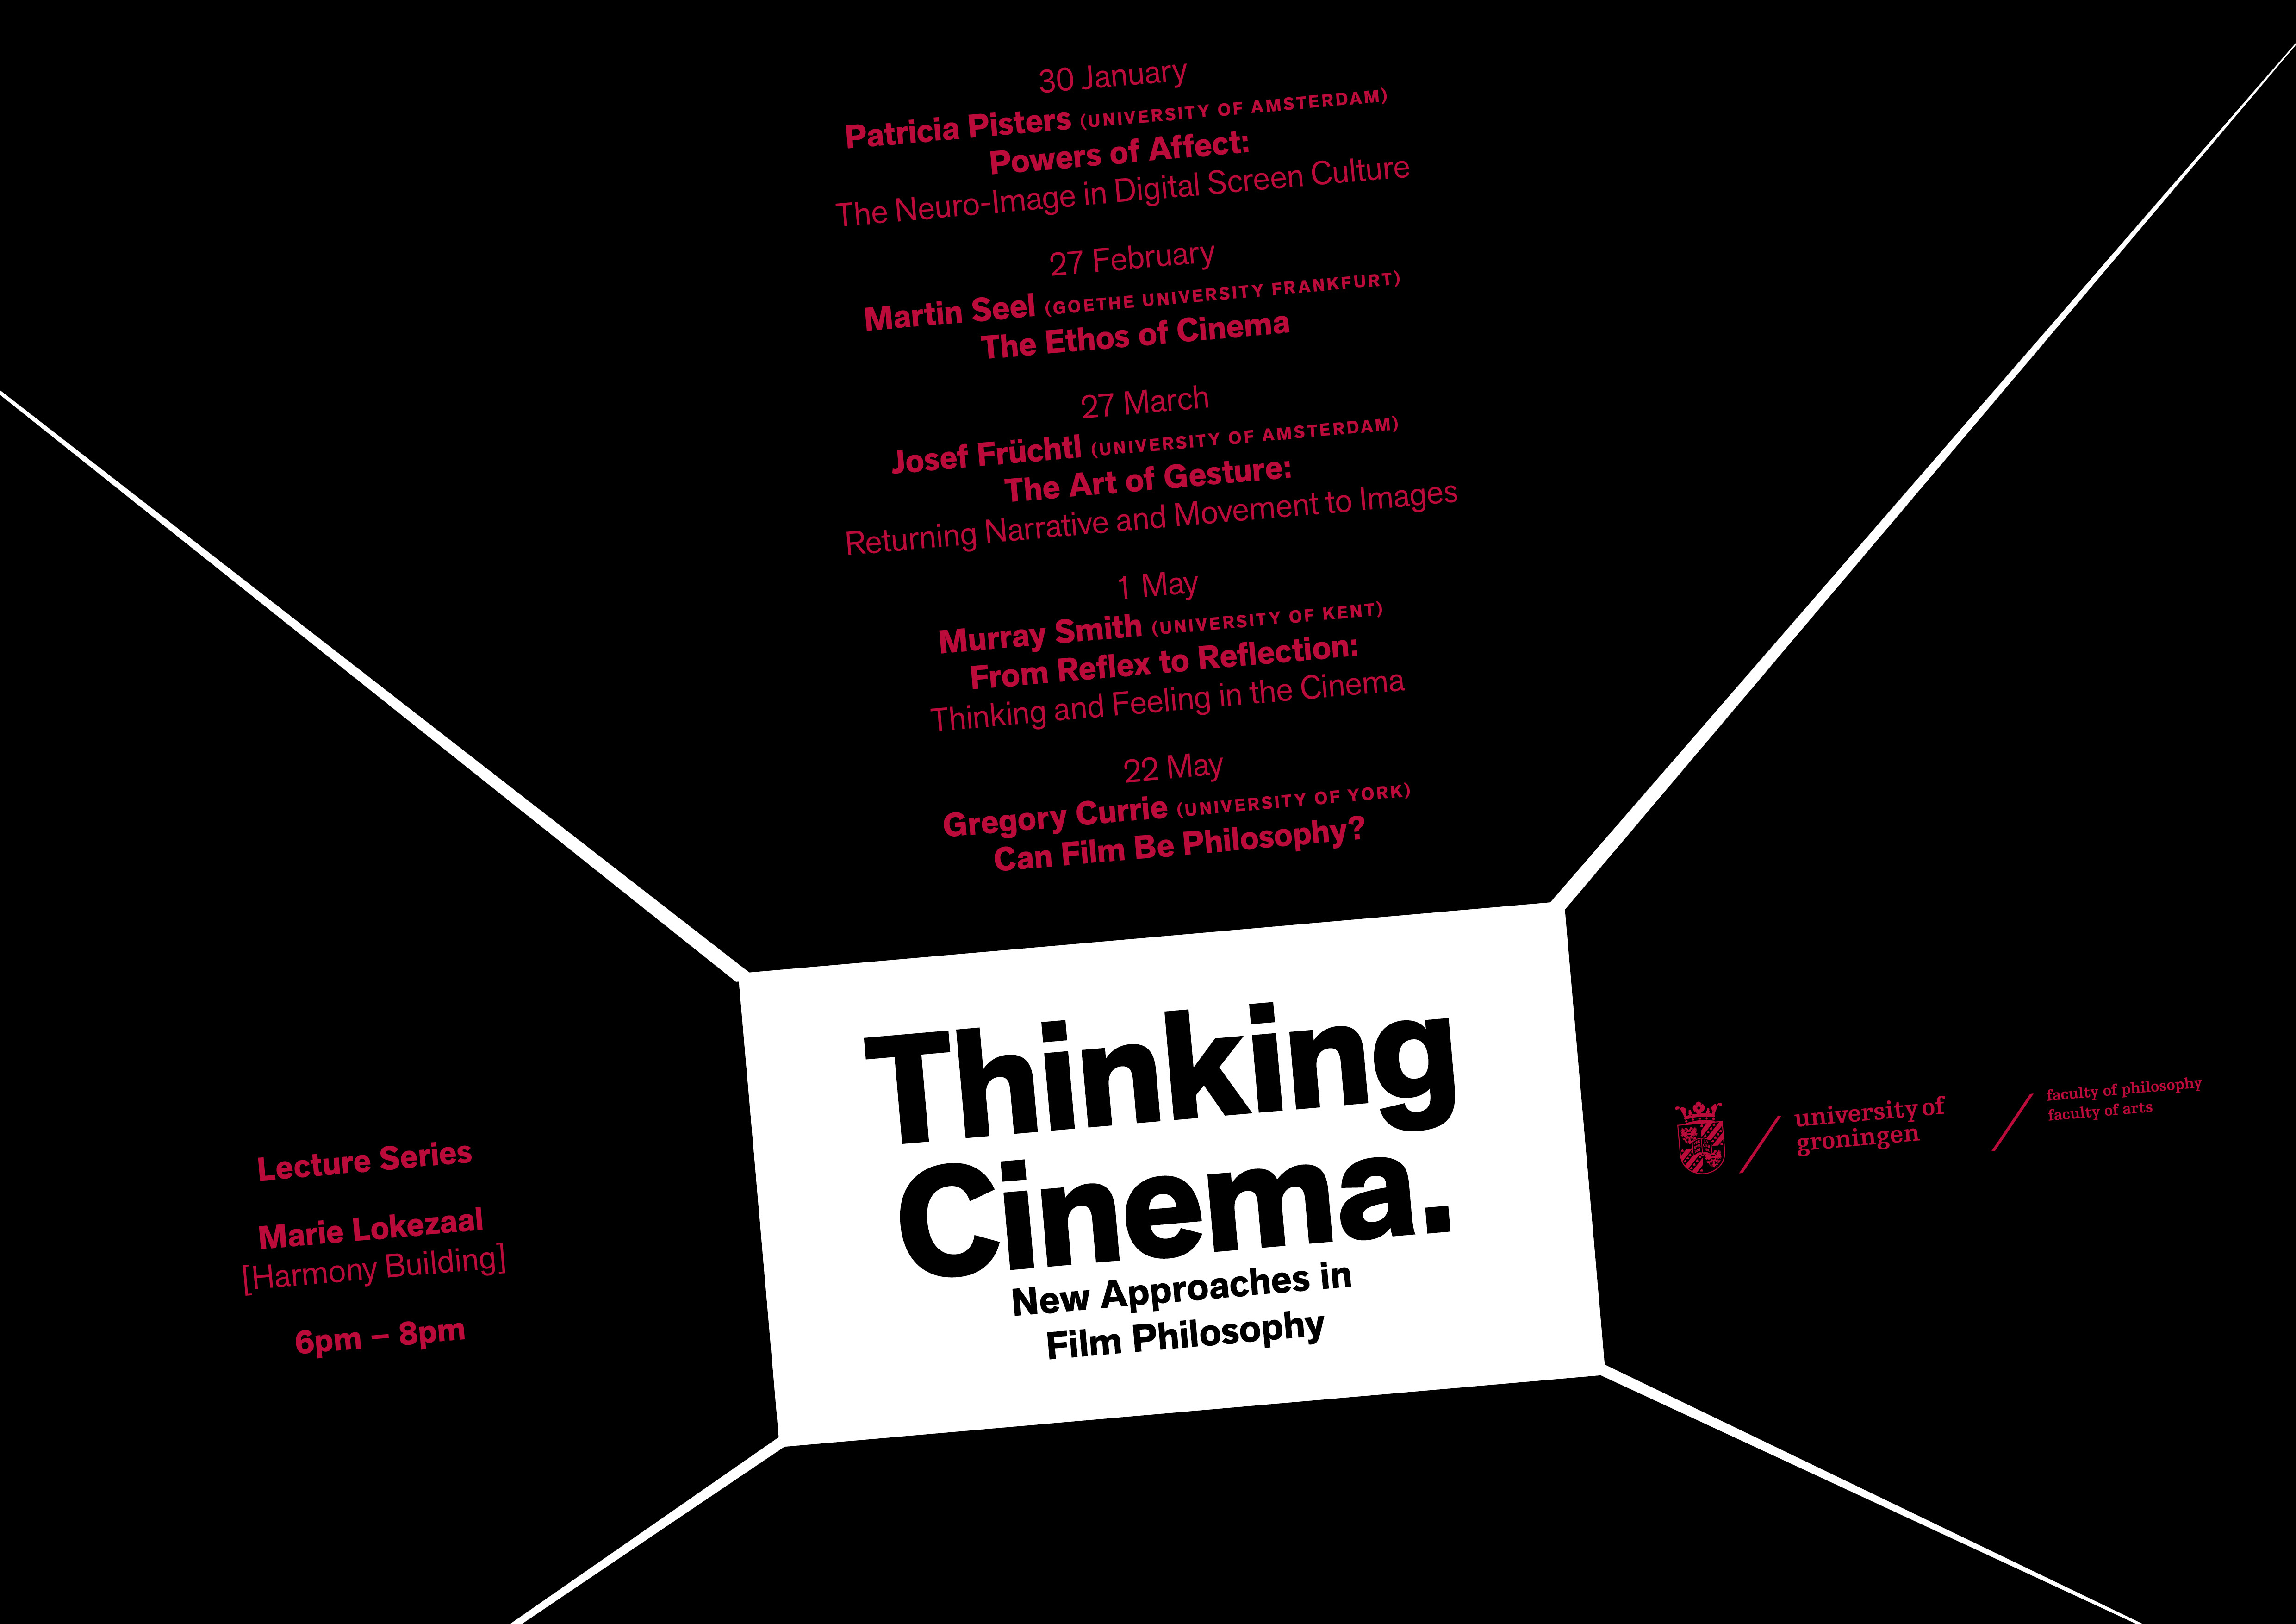 Thinking Cinema New Approaches In Film Philosophy